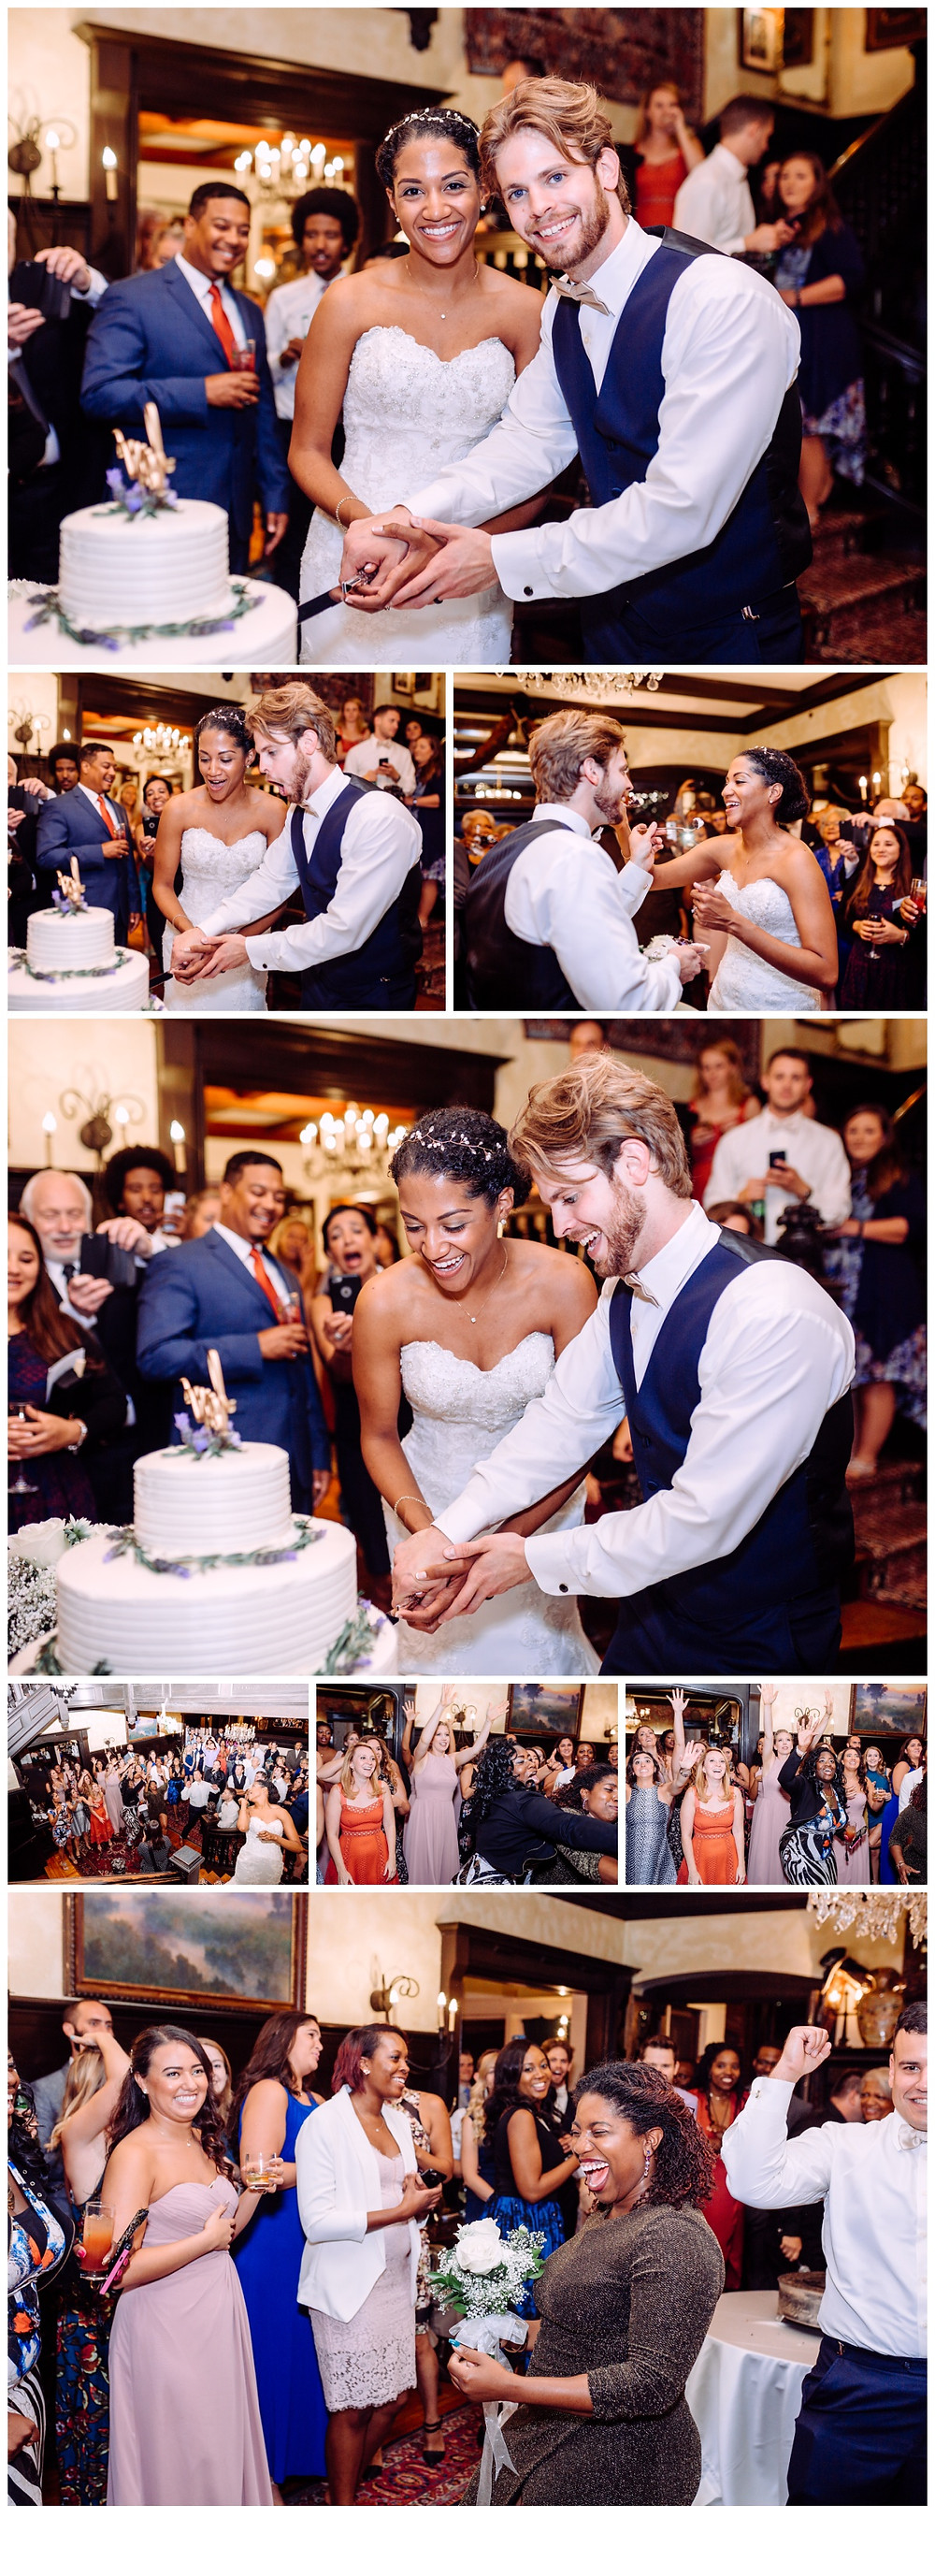 Bride and Groom cutting the cake captured by Katherine Elizabeth Photography